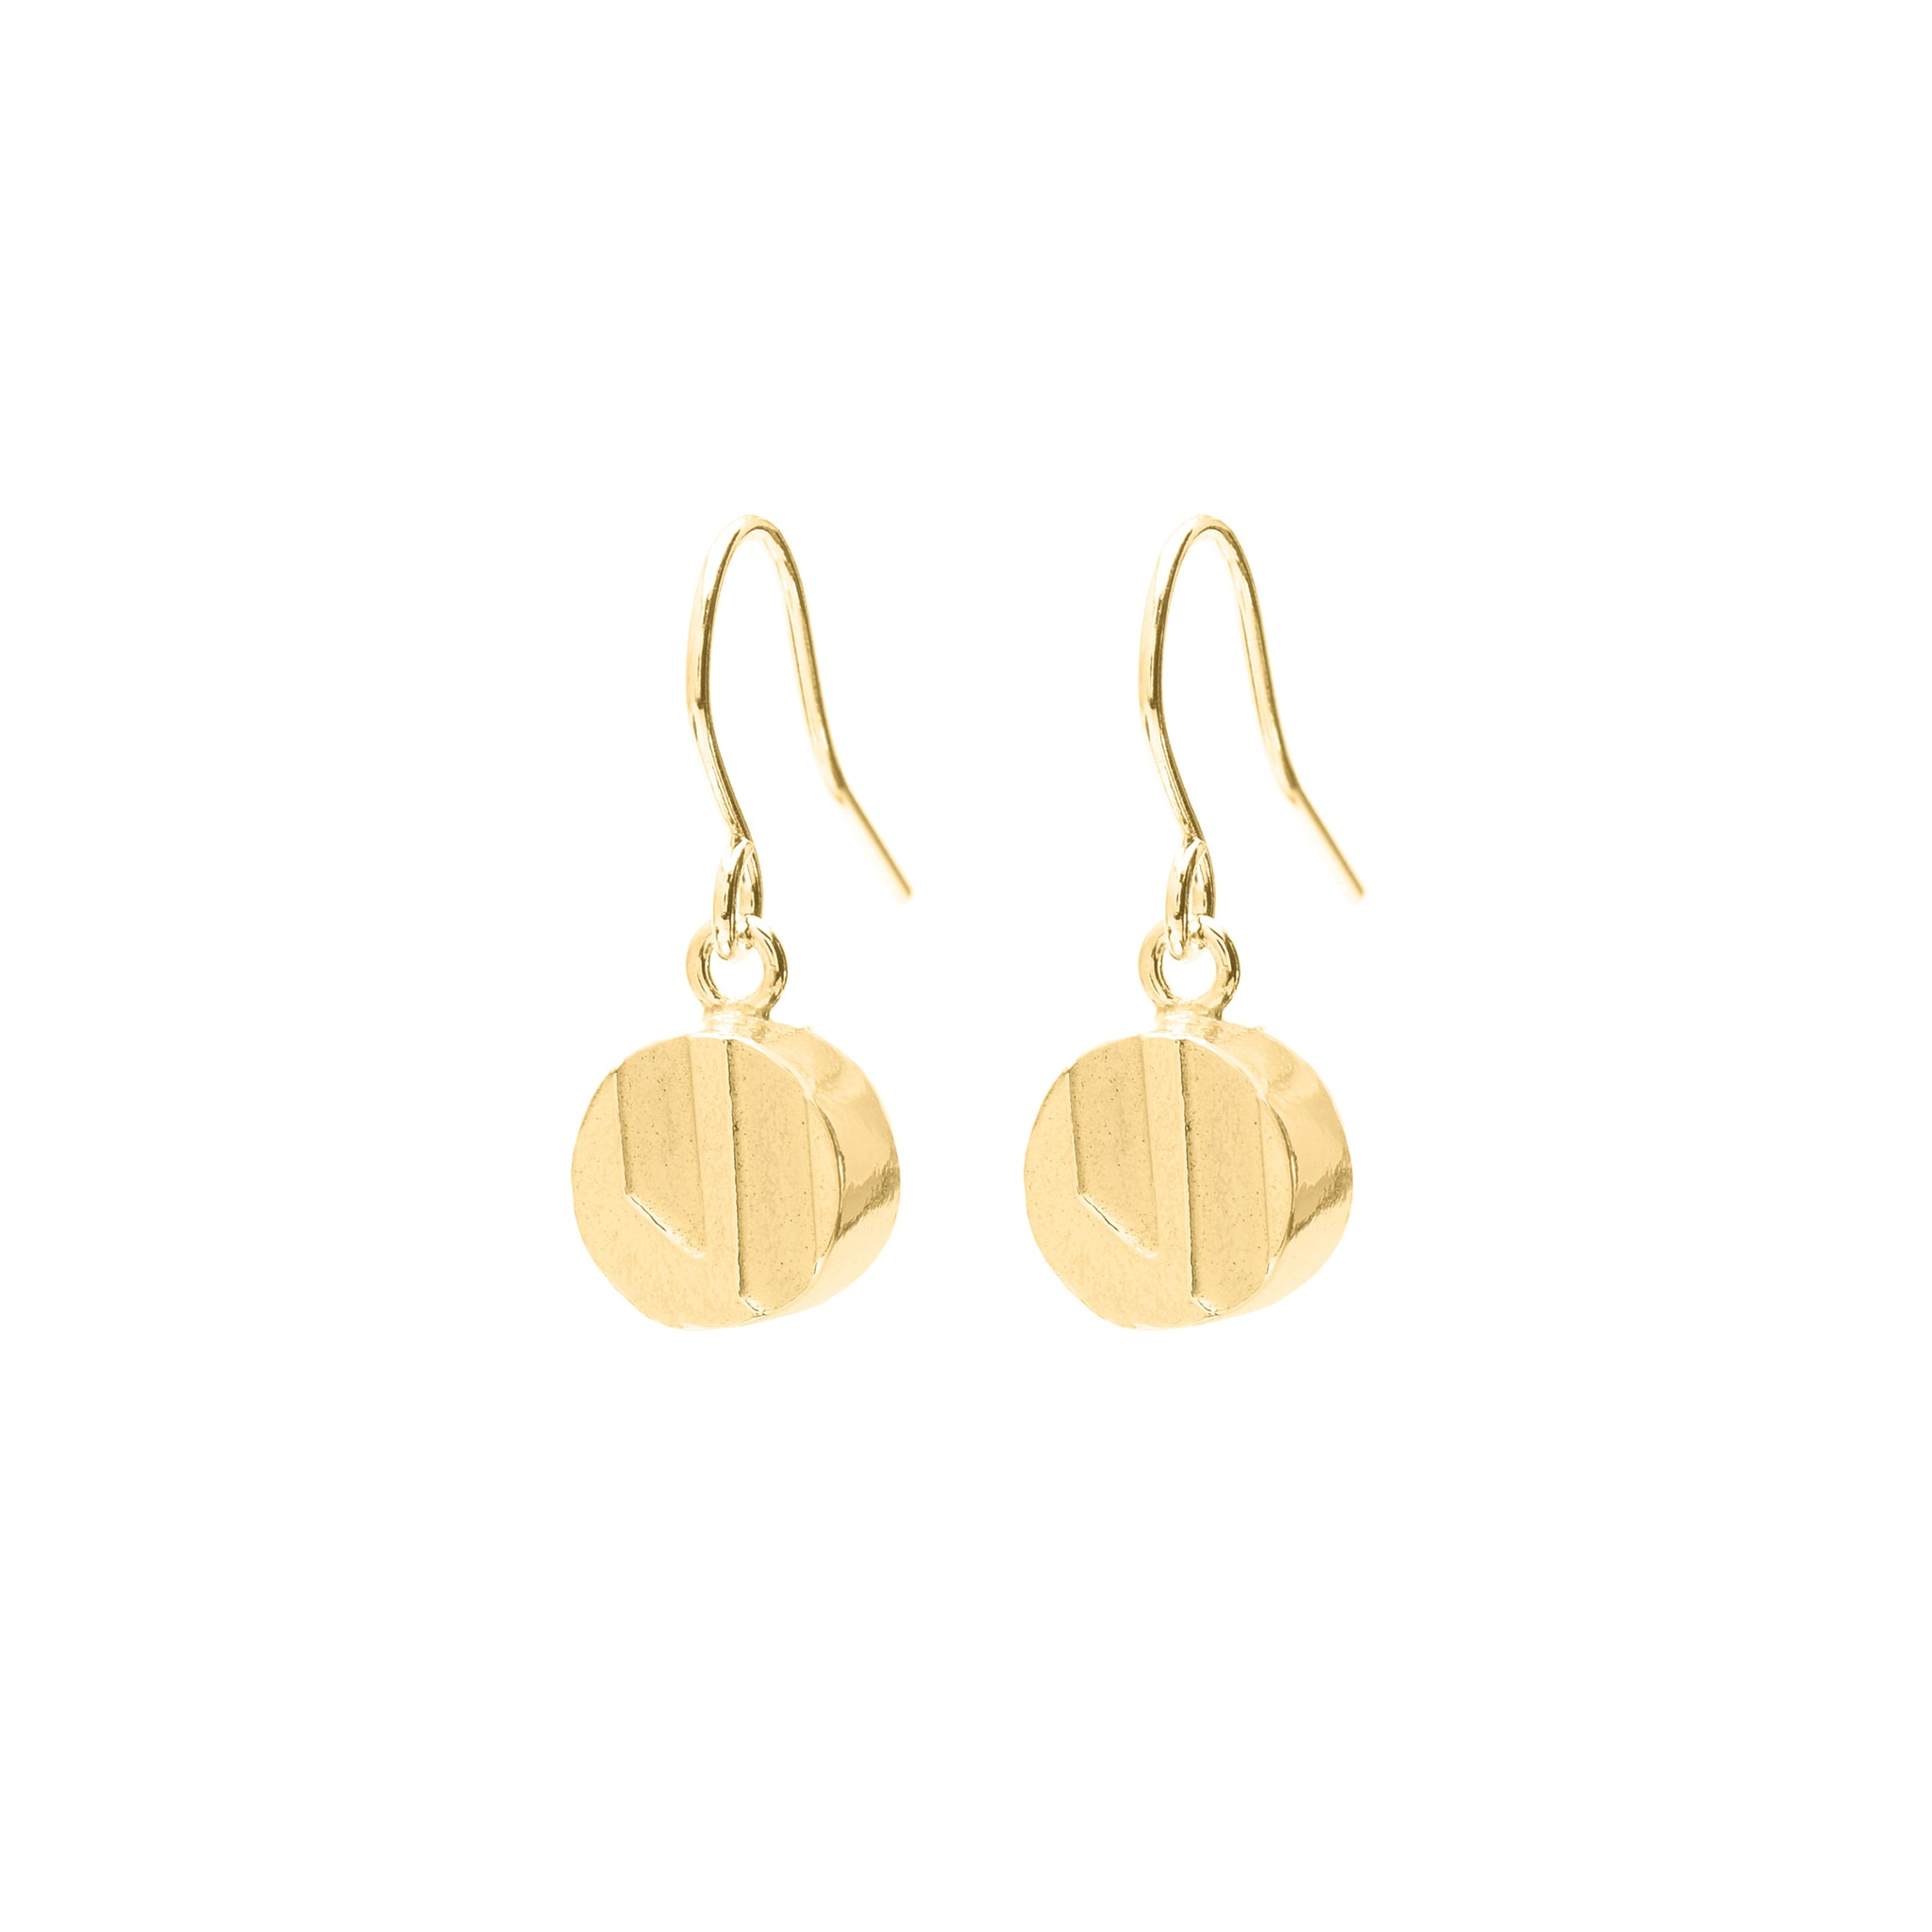 Fine Hook Earrings with etched Pendant